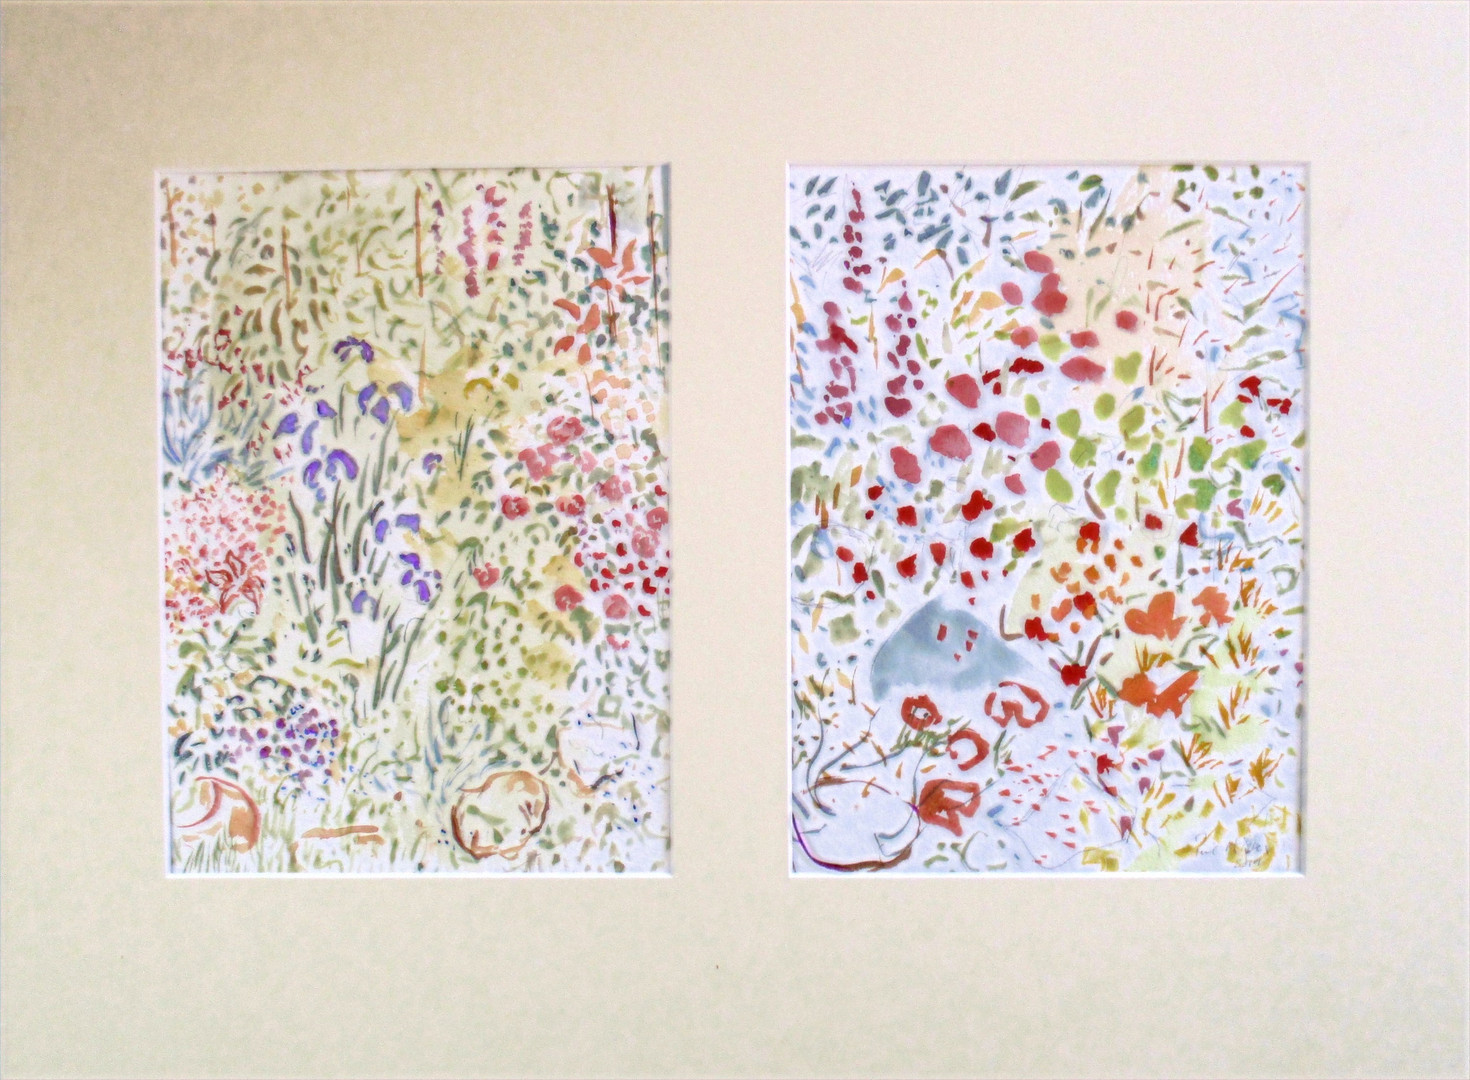 Two Studies of a Garden